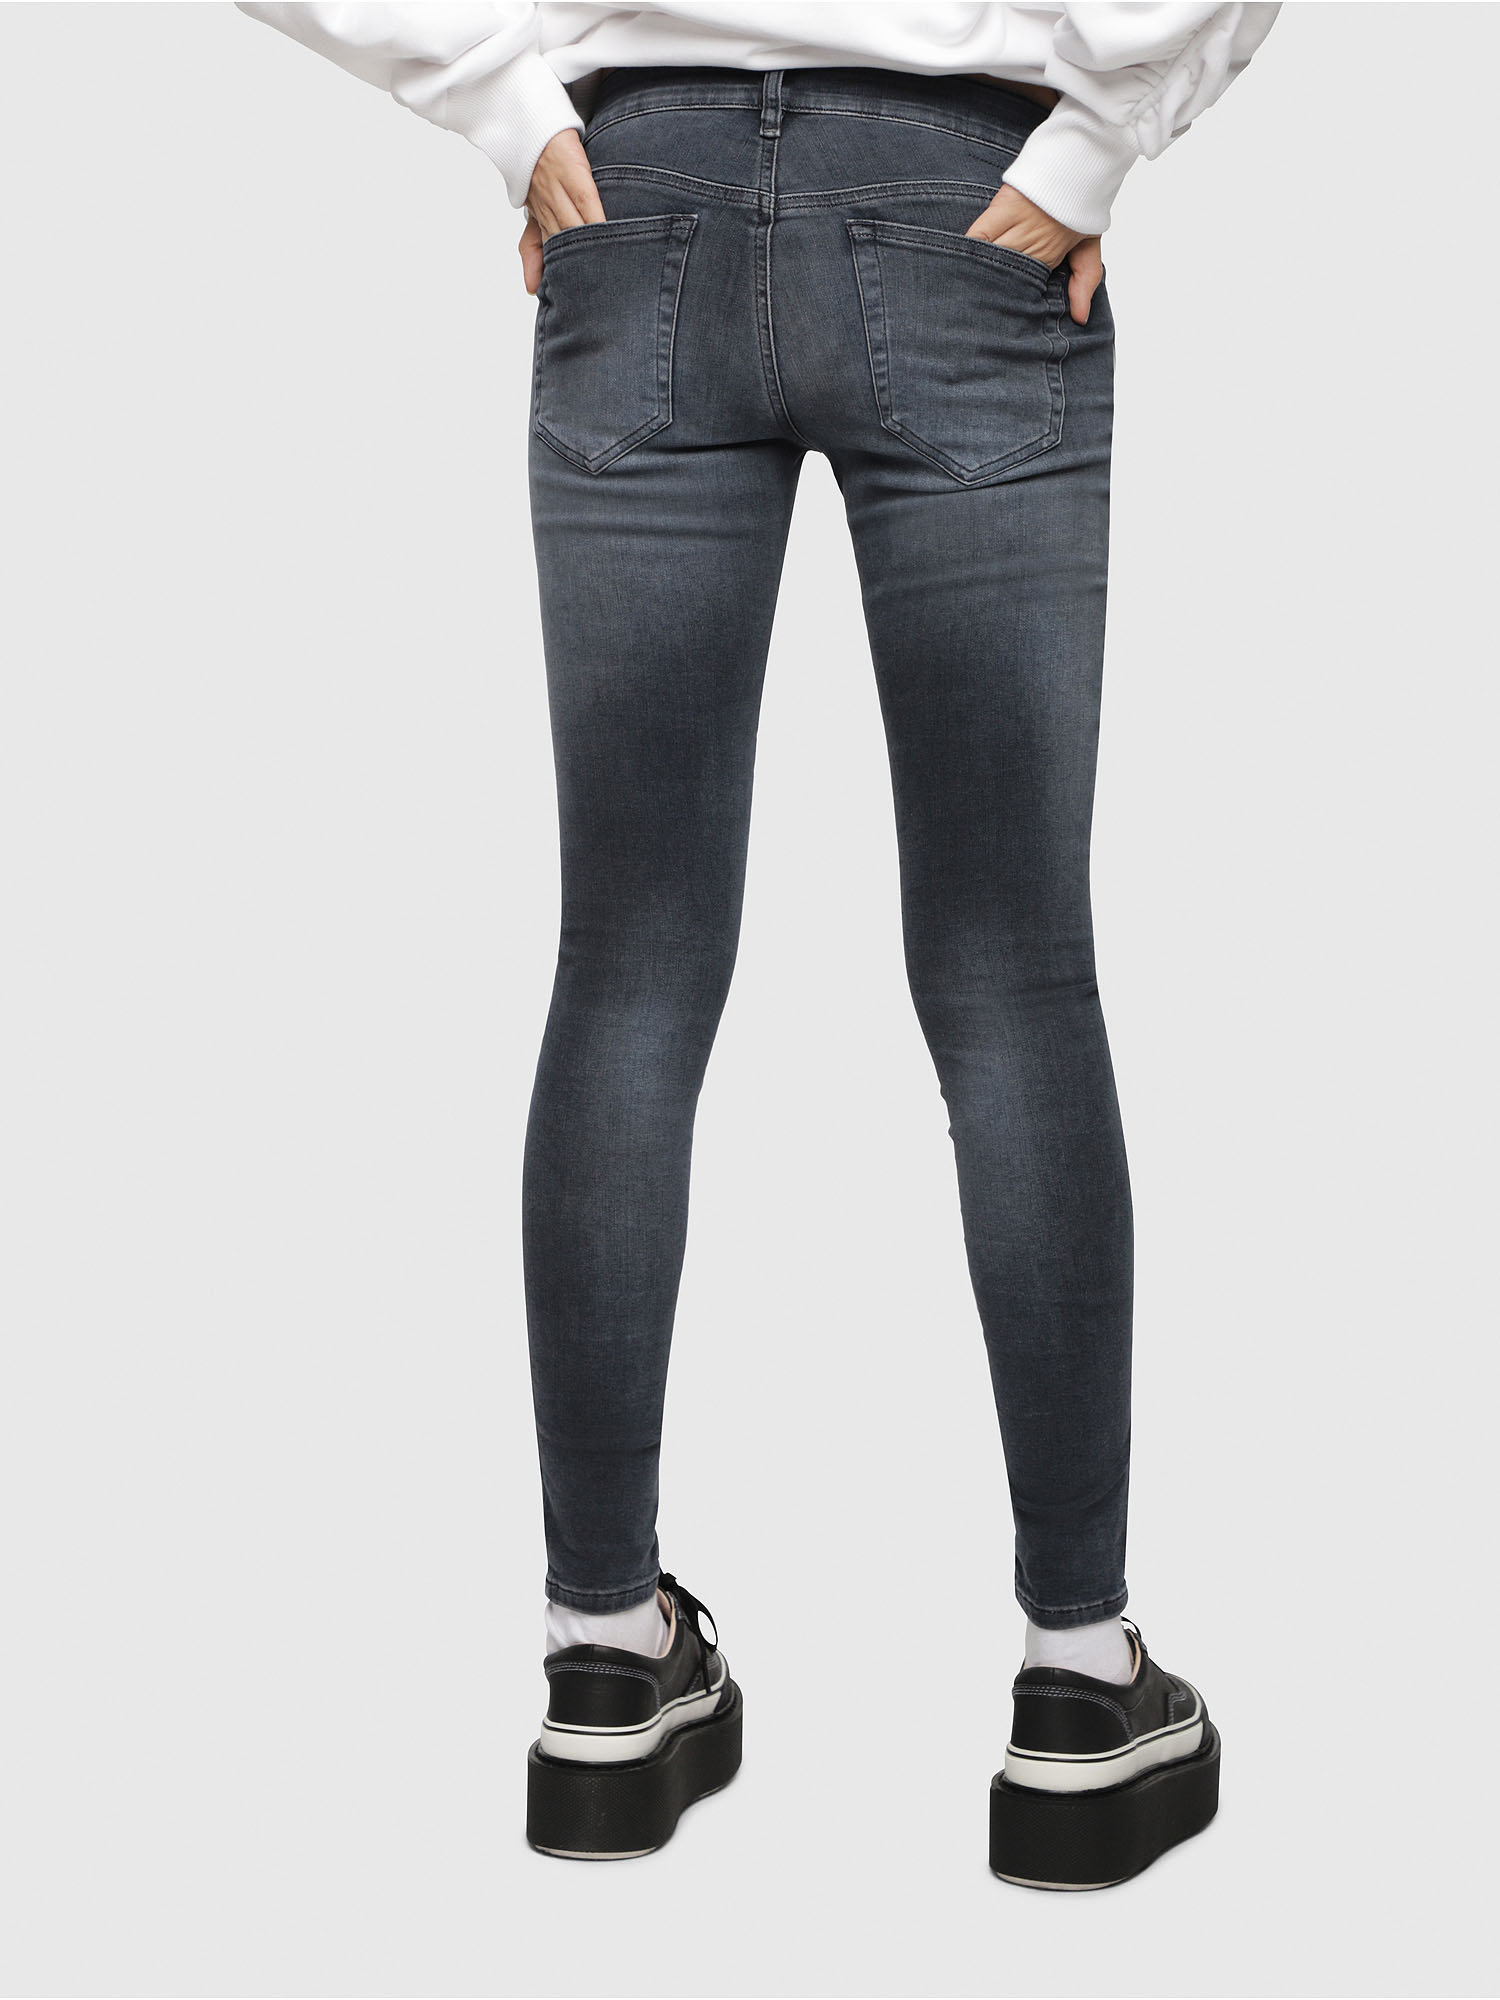 Diesel - Slandy Low 069BT,  - Jeans - Image 2